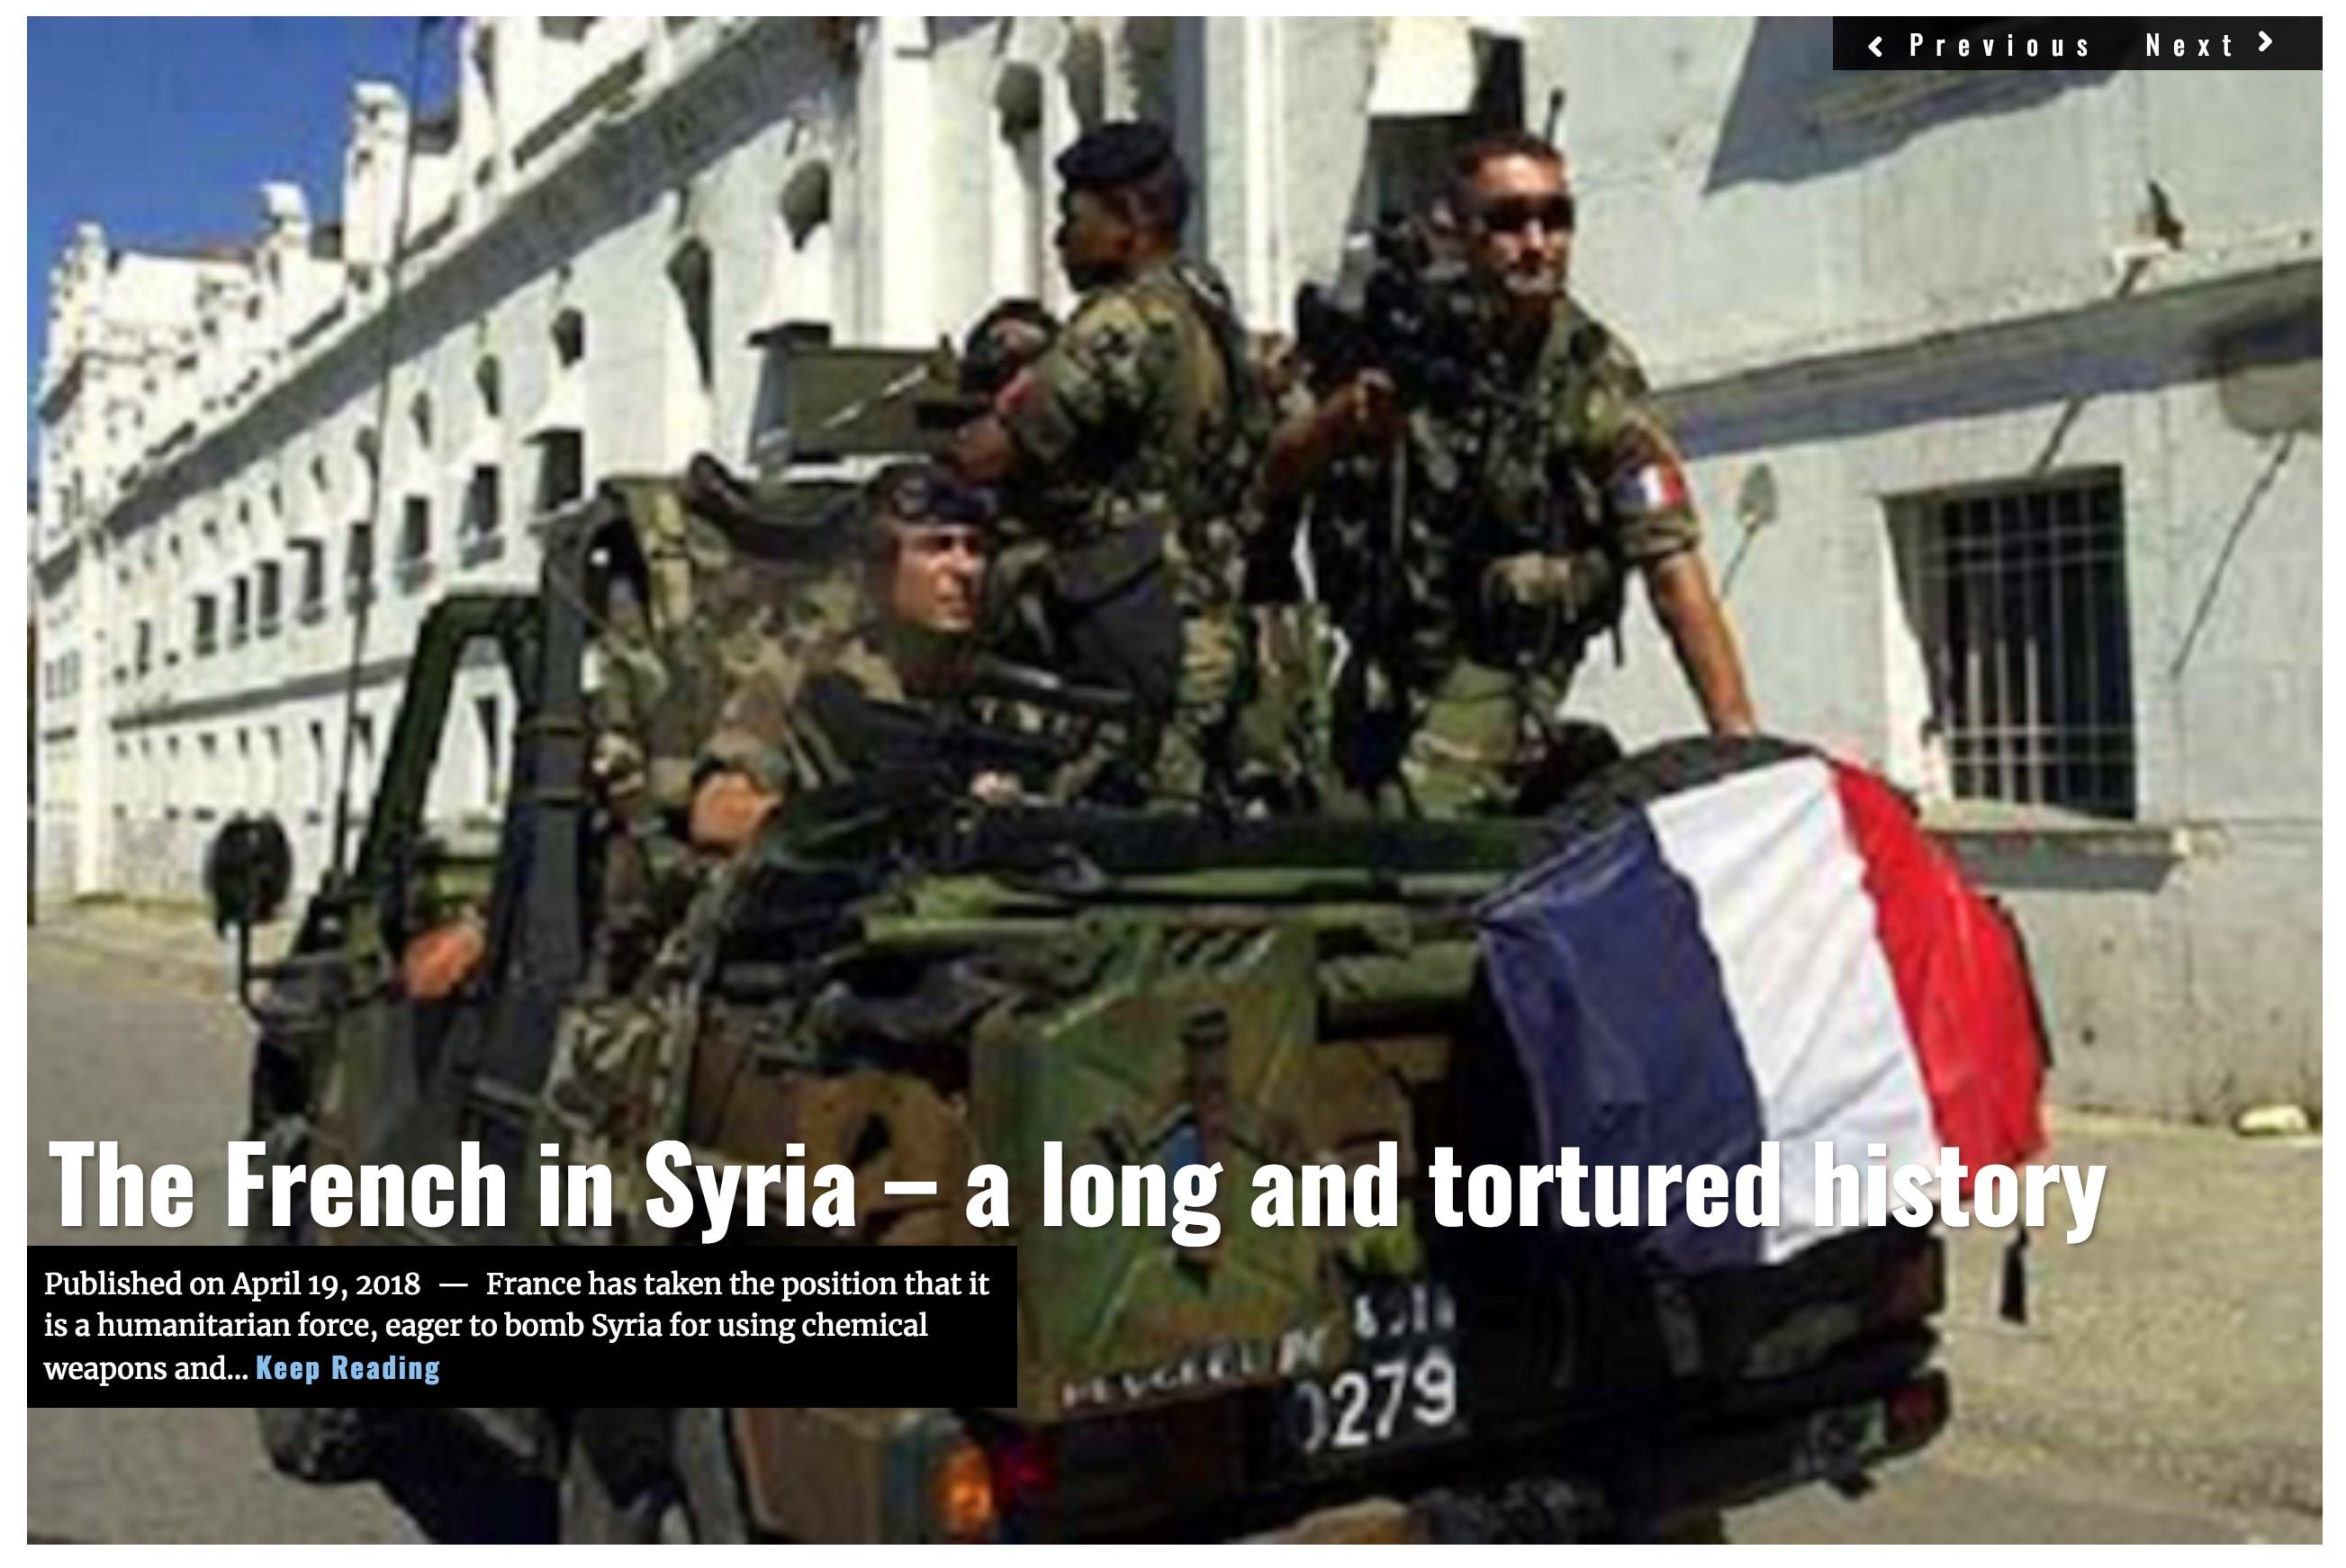 Image Lima Charlie News Headline French Syria Tortured History APR 19 2018